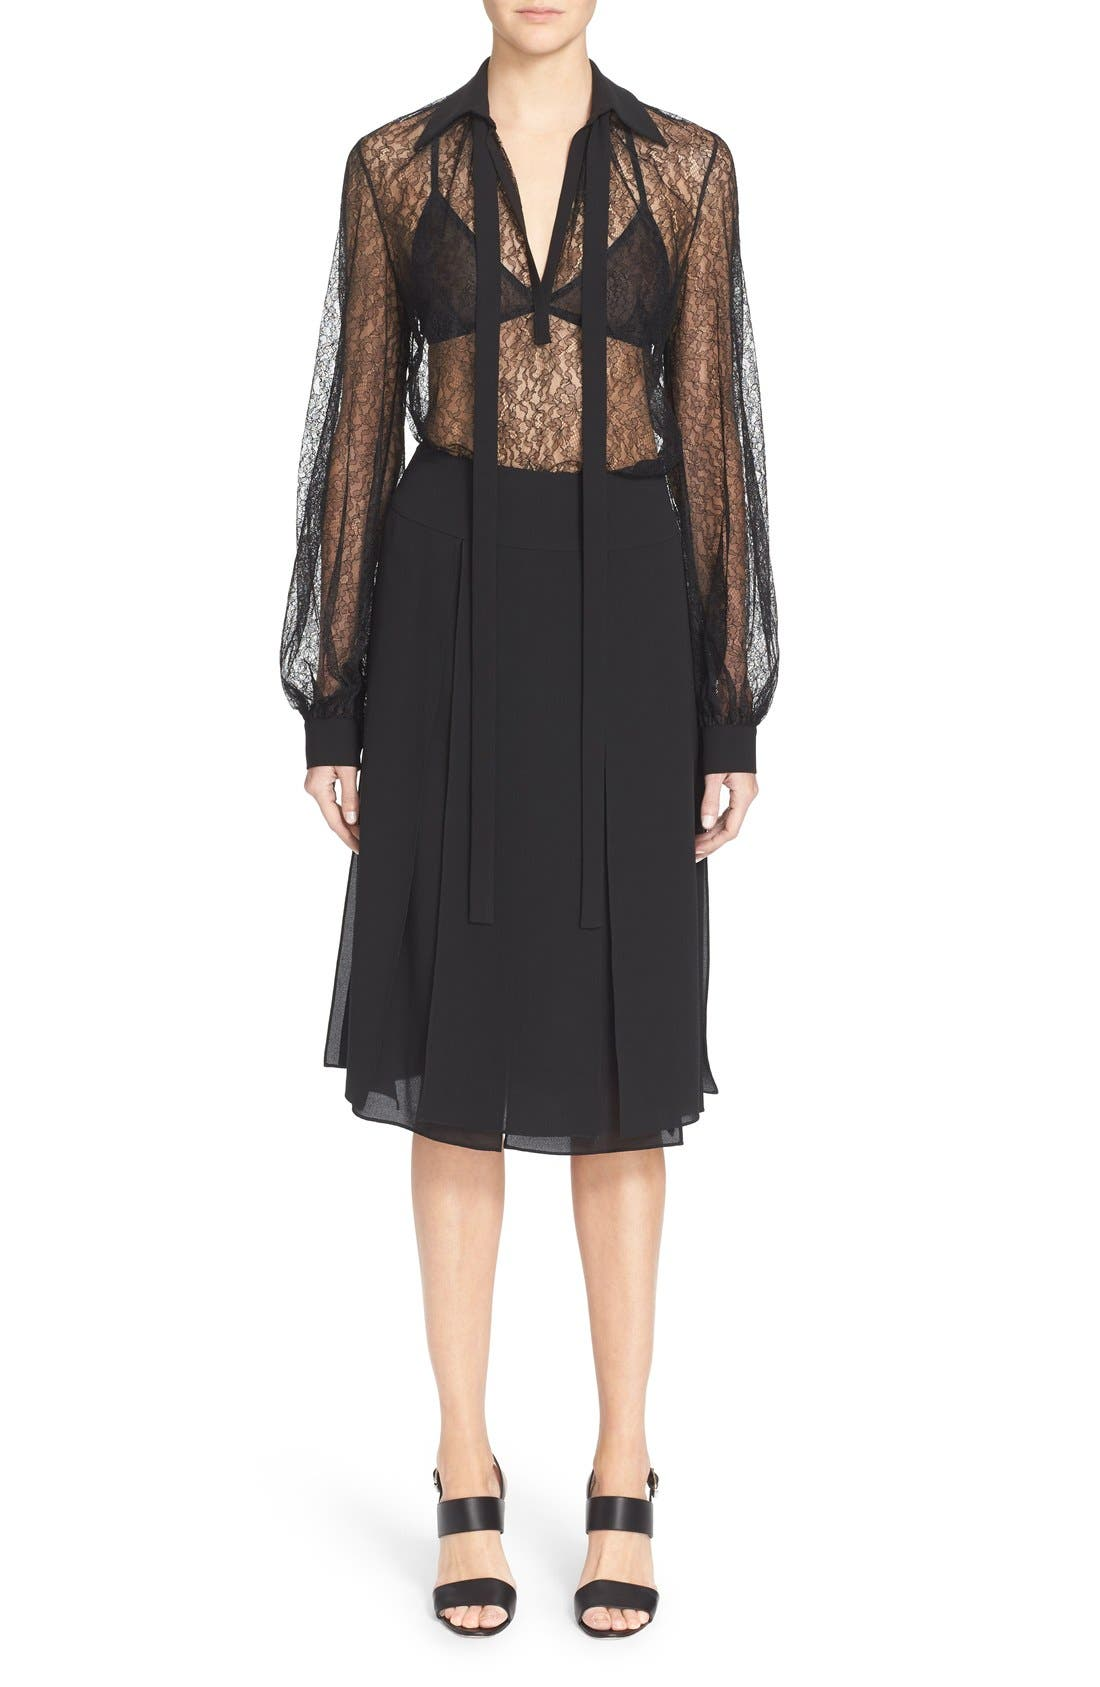 Alternate Image 1 Selected - Michael Kors Tie Neck Chantilly Lace Blouse